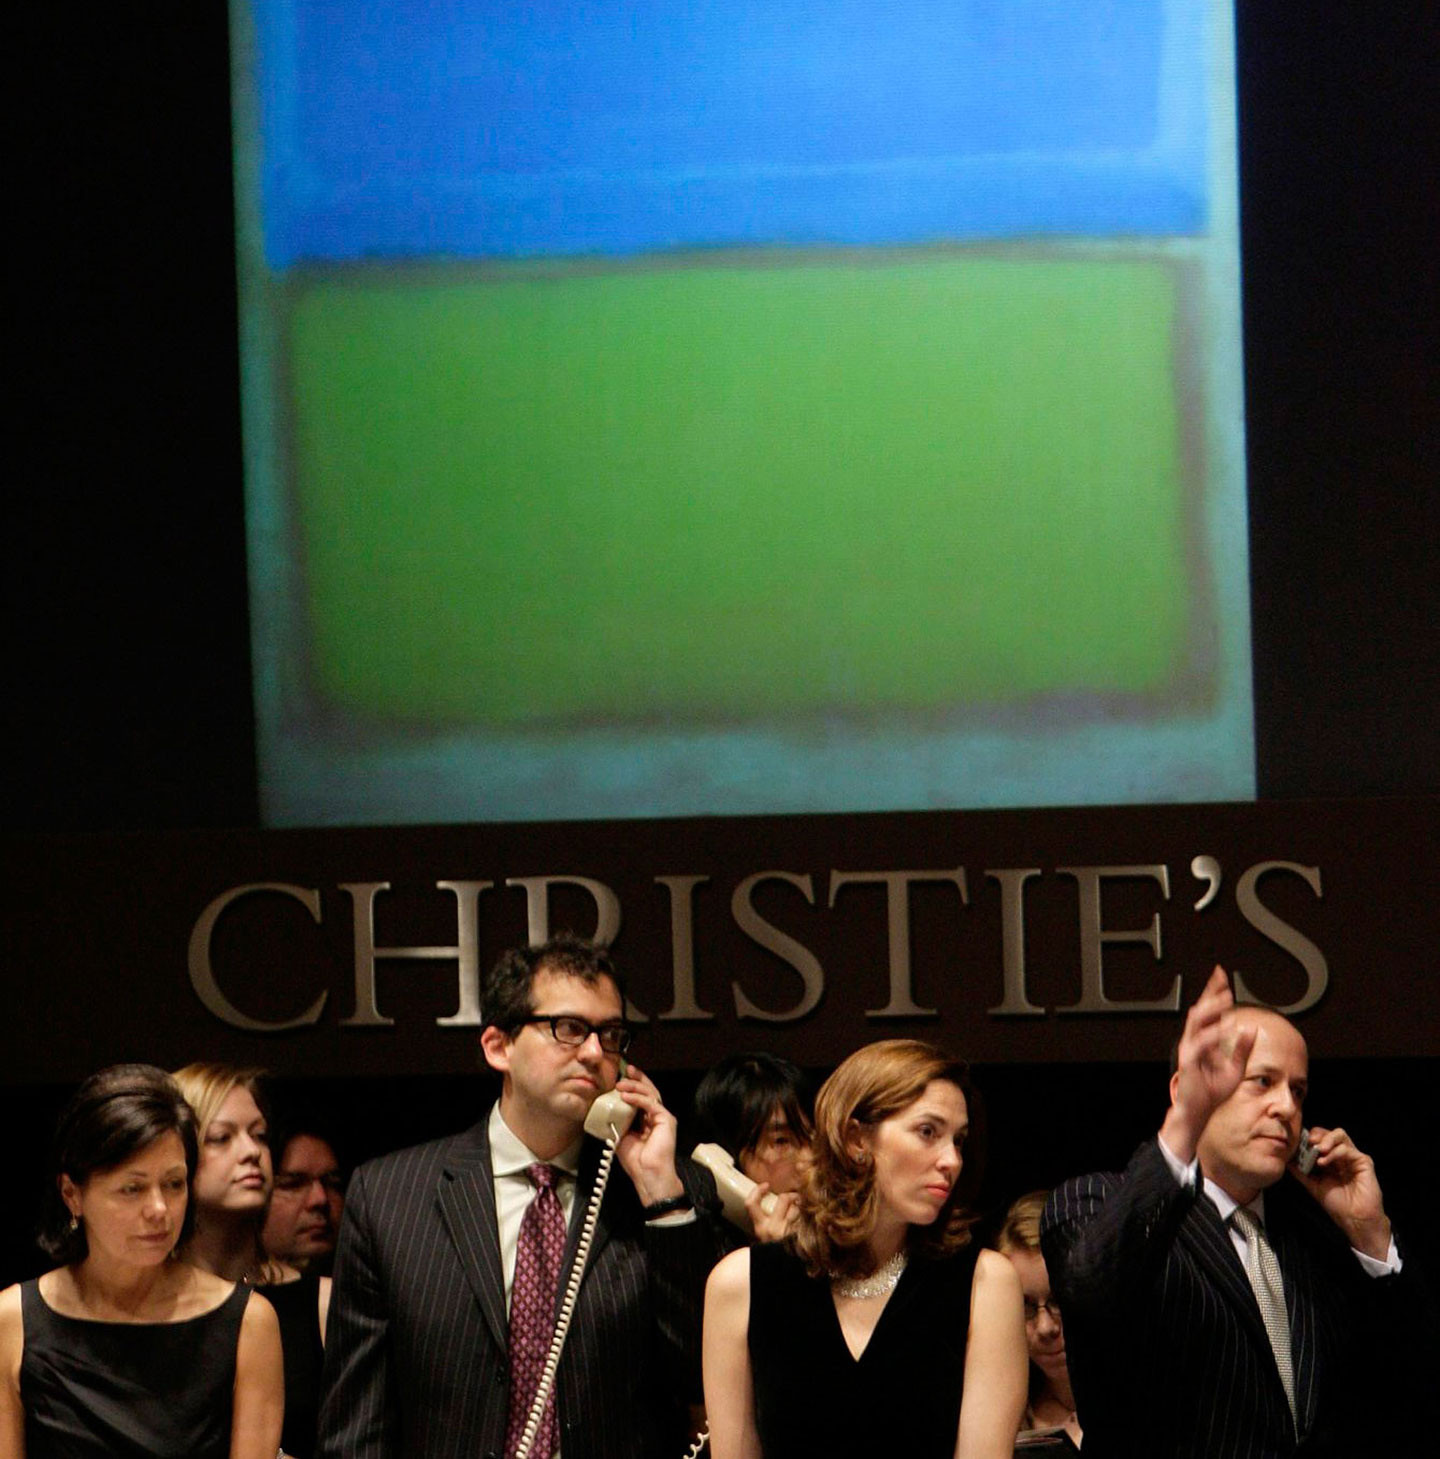 Chritstie's auctioneers vend a Mark Rothko painting.